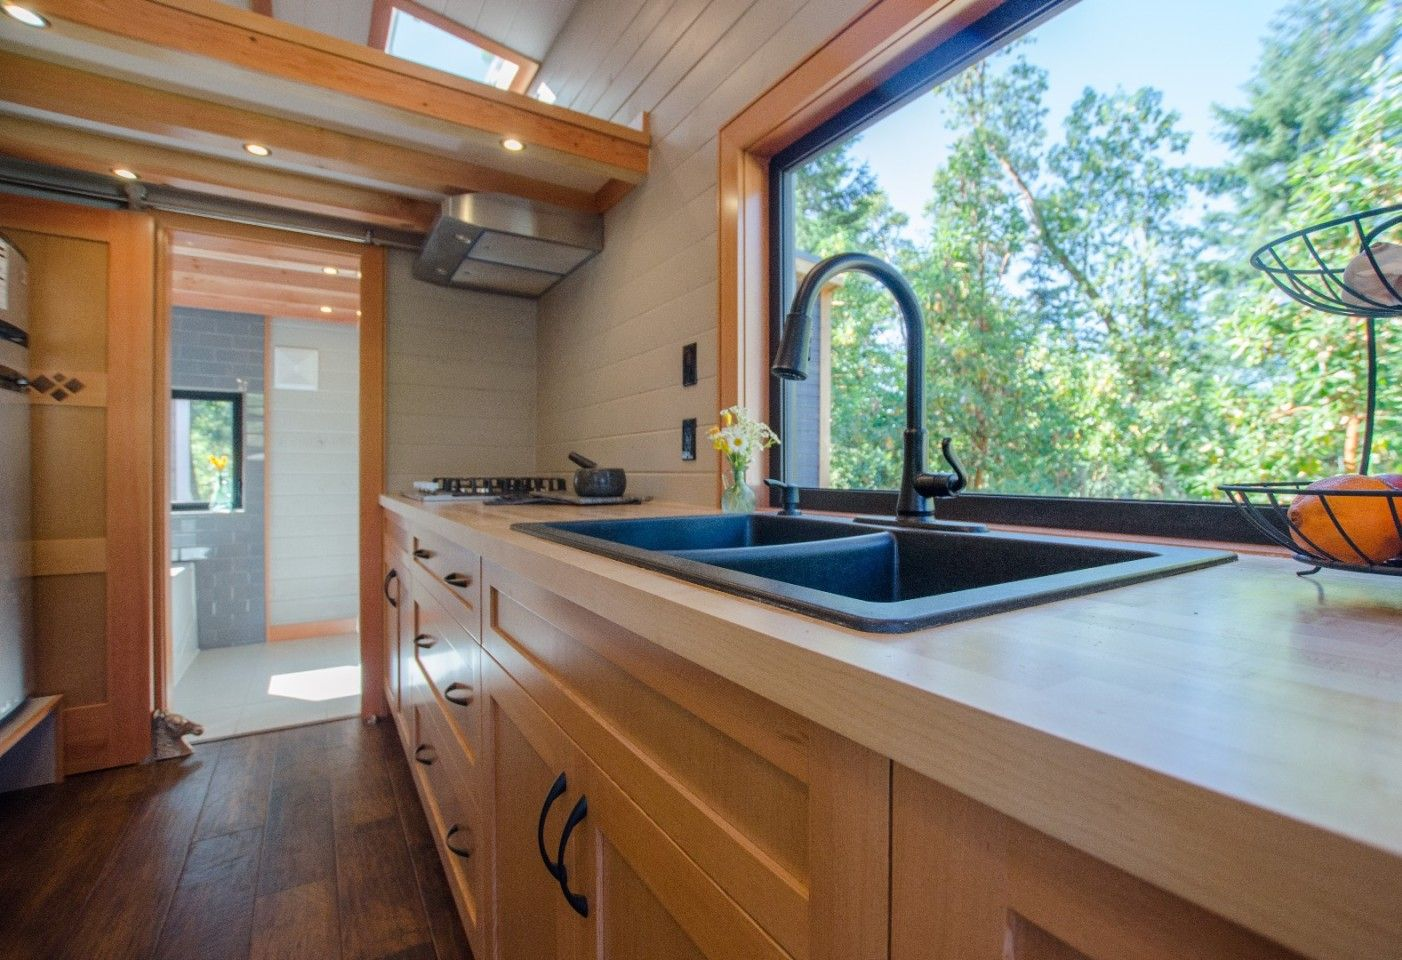 Kestrel tiny house: Soak in the tub and drink in the view #tinyhousebathroom